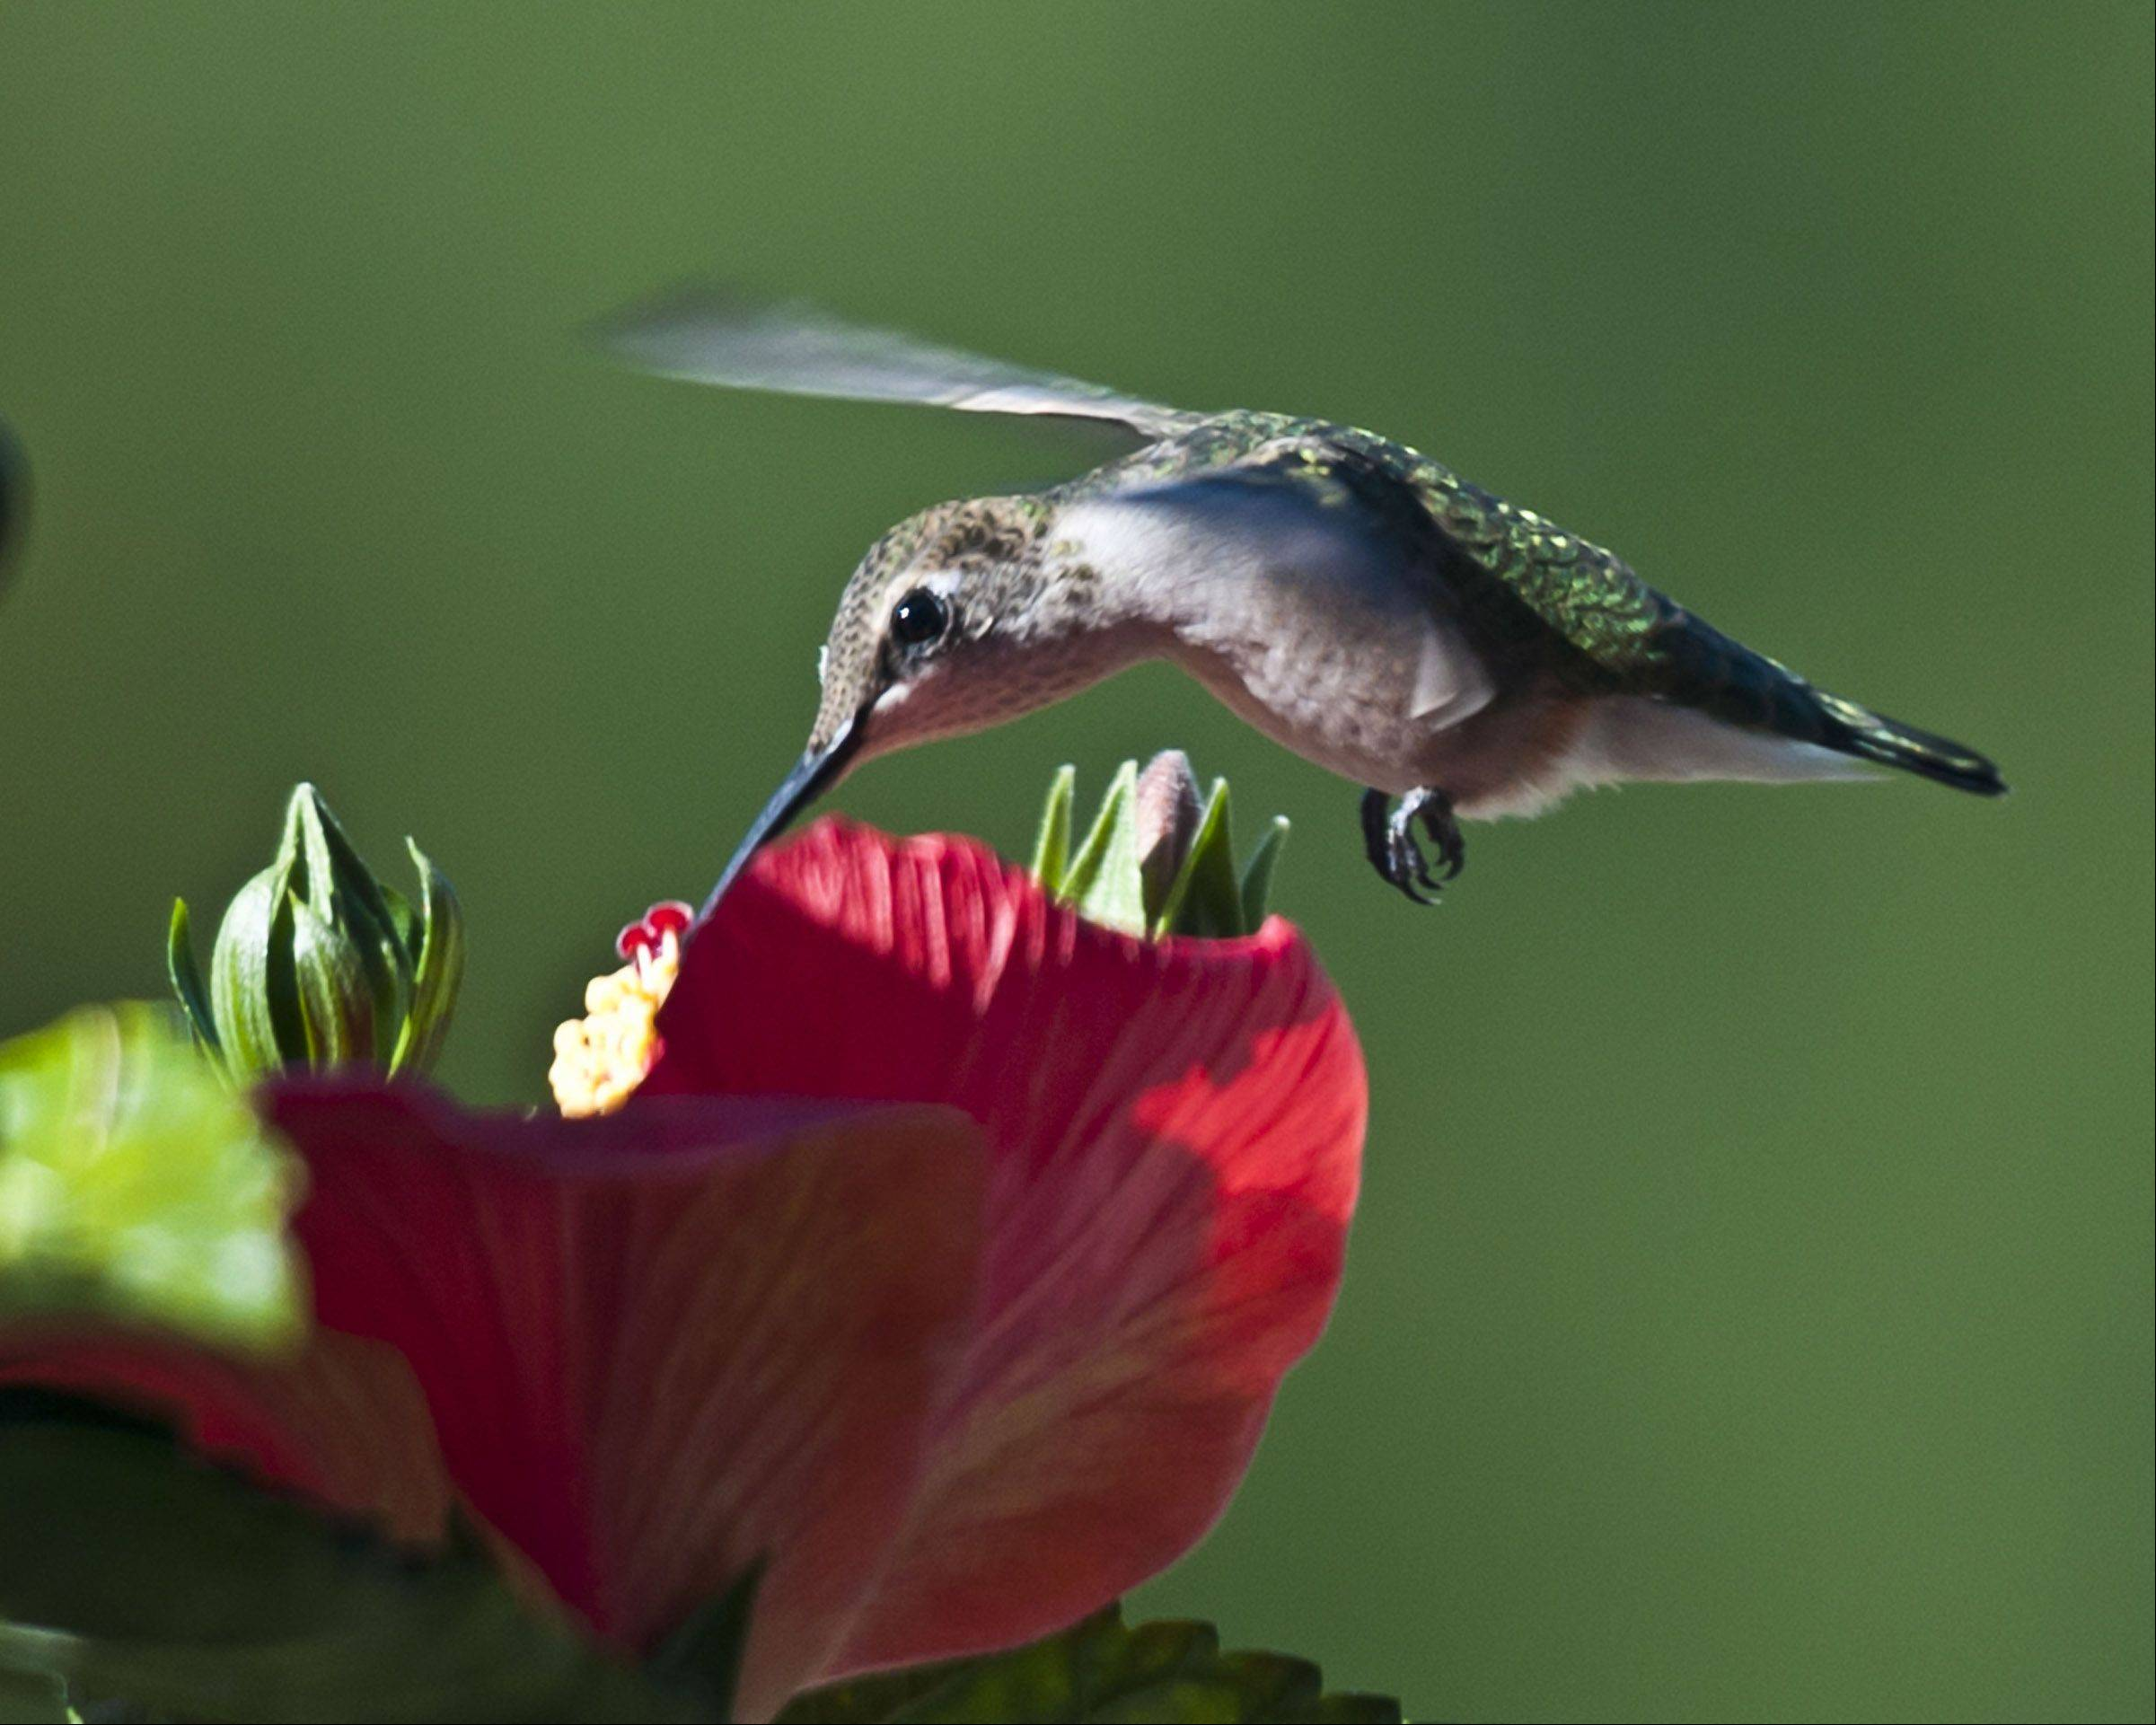 I captured this little guy in flight outside my house one morning. From my research it appears to be a juvenile ruby throated Humming Bird. I shot this with a Nikon d300 with a Nikor 70-200 f:2.8. This is a RAW file so after the fact I was able adjust color balance, gamma and other post editing controls to tweak the photo.